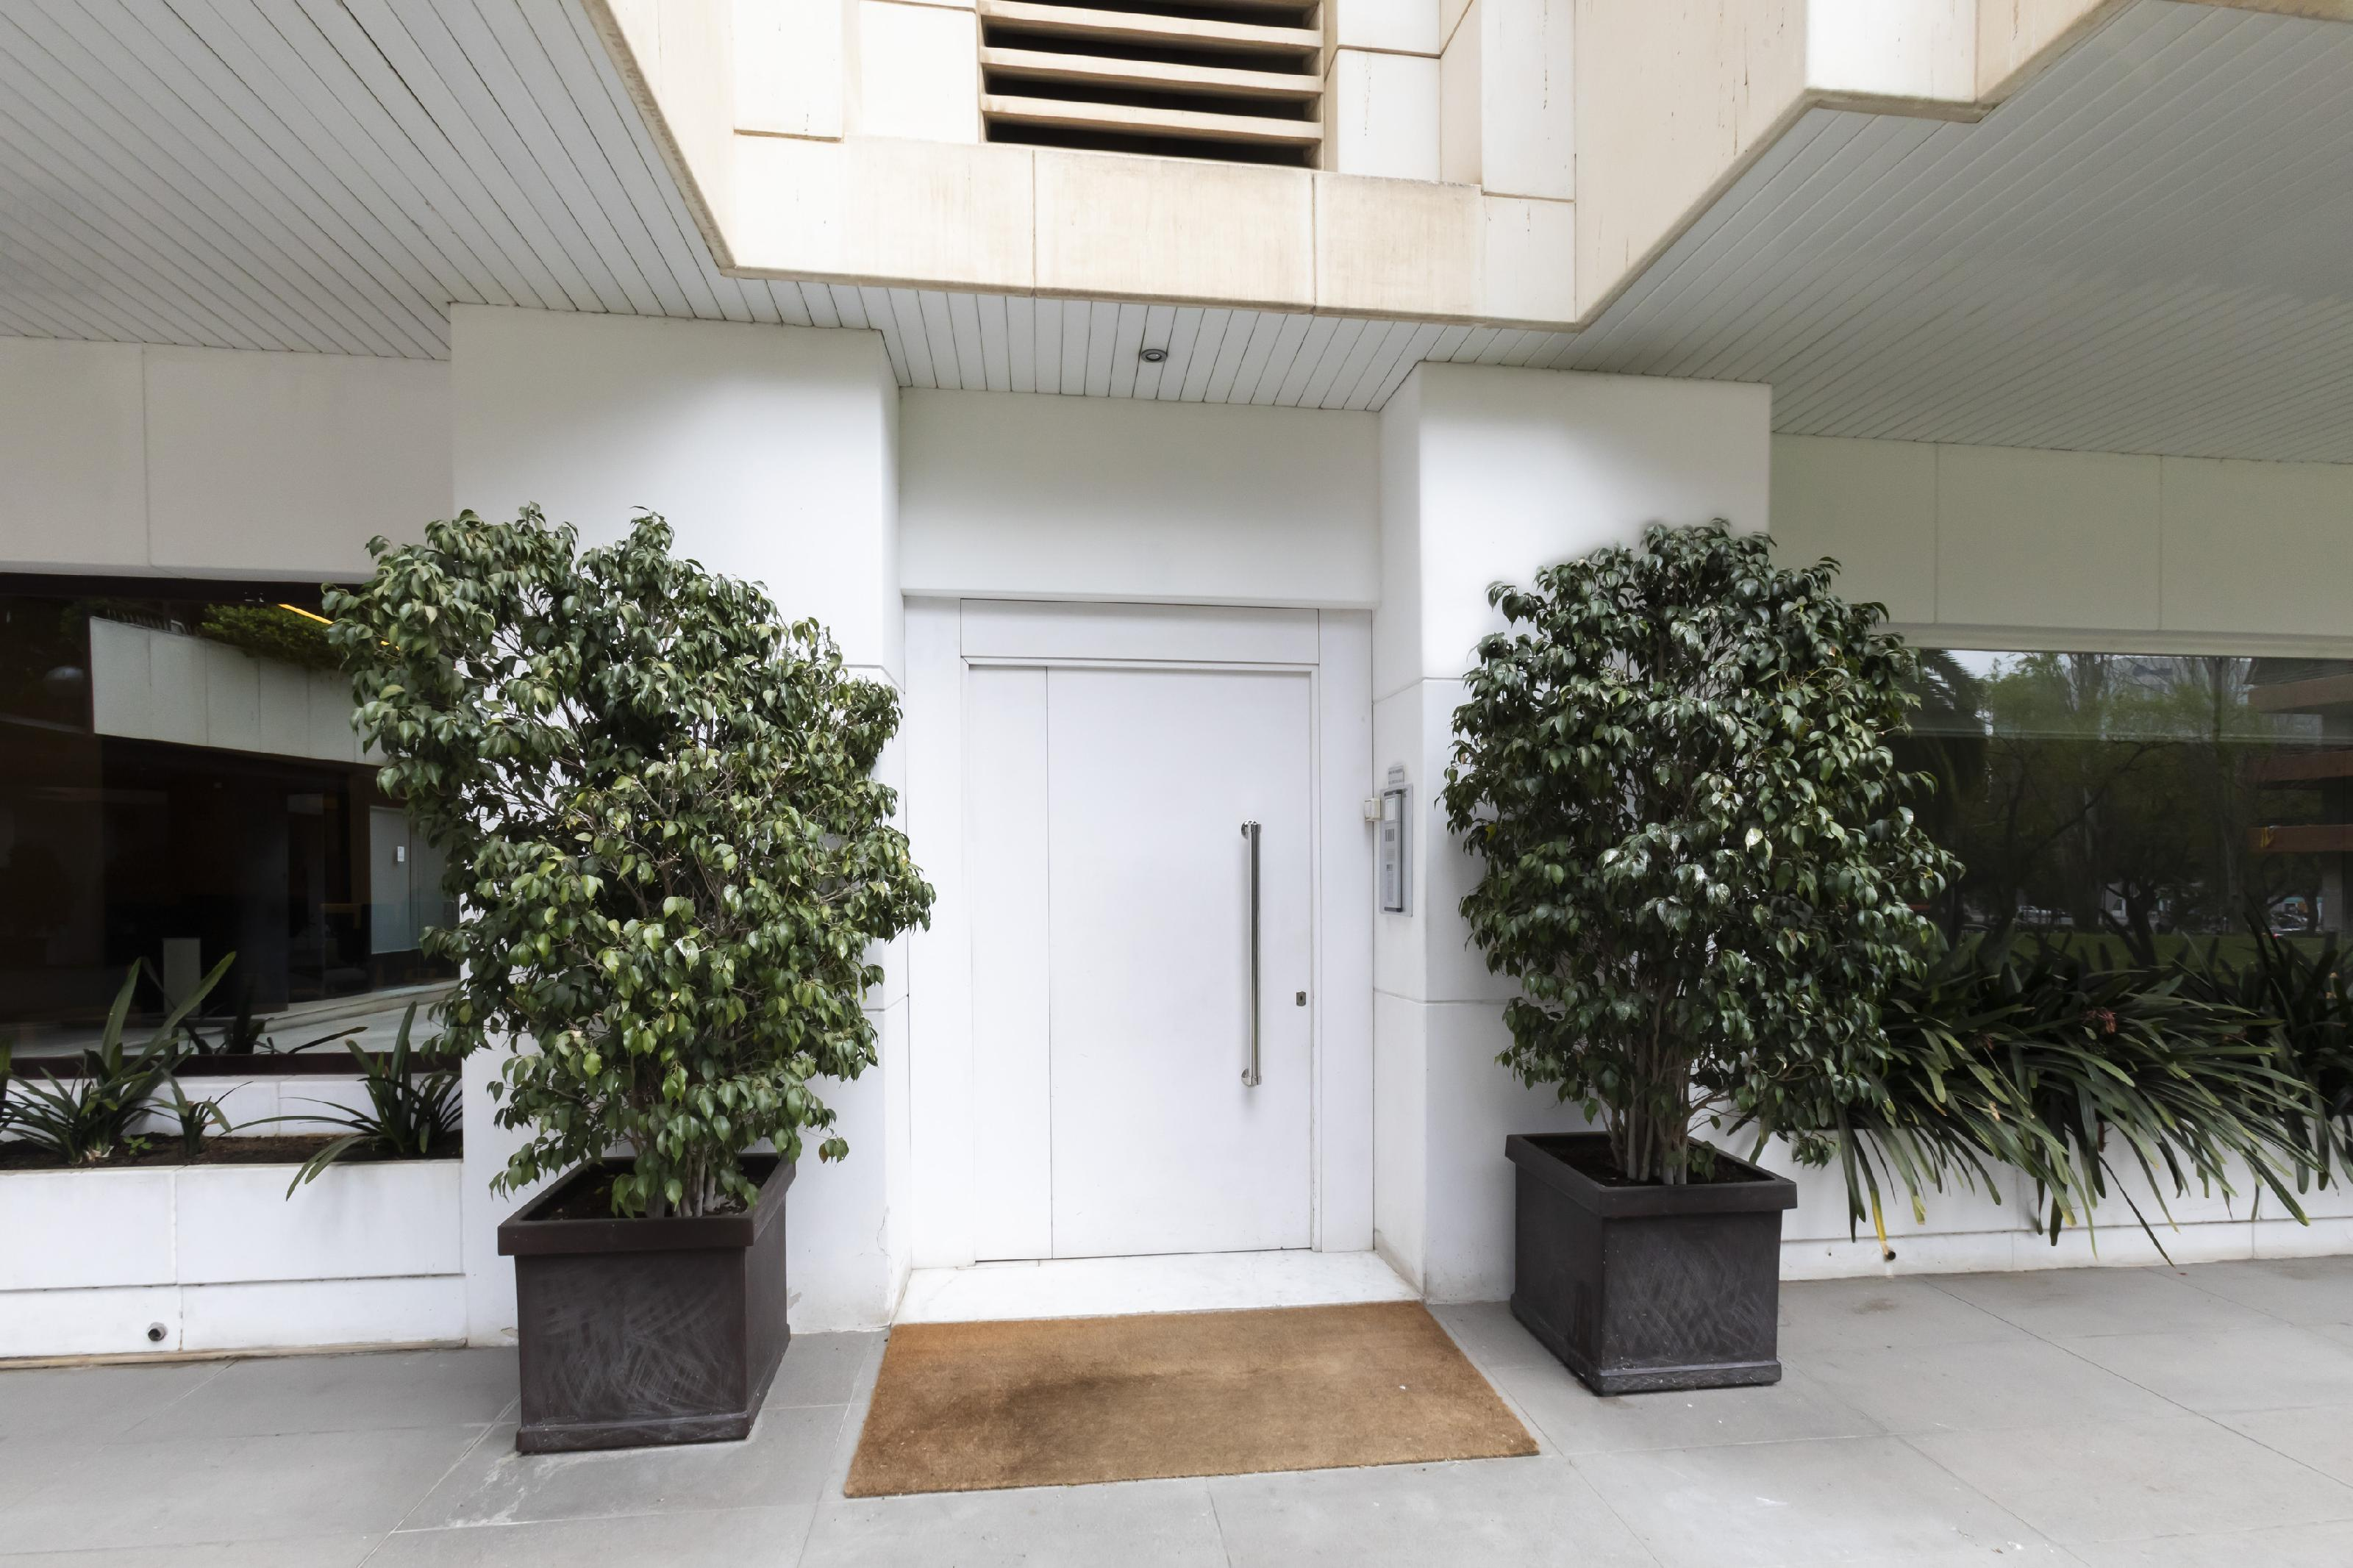 247020 Flat for sale in Les Corts, Les Corts 38